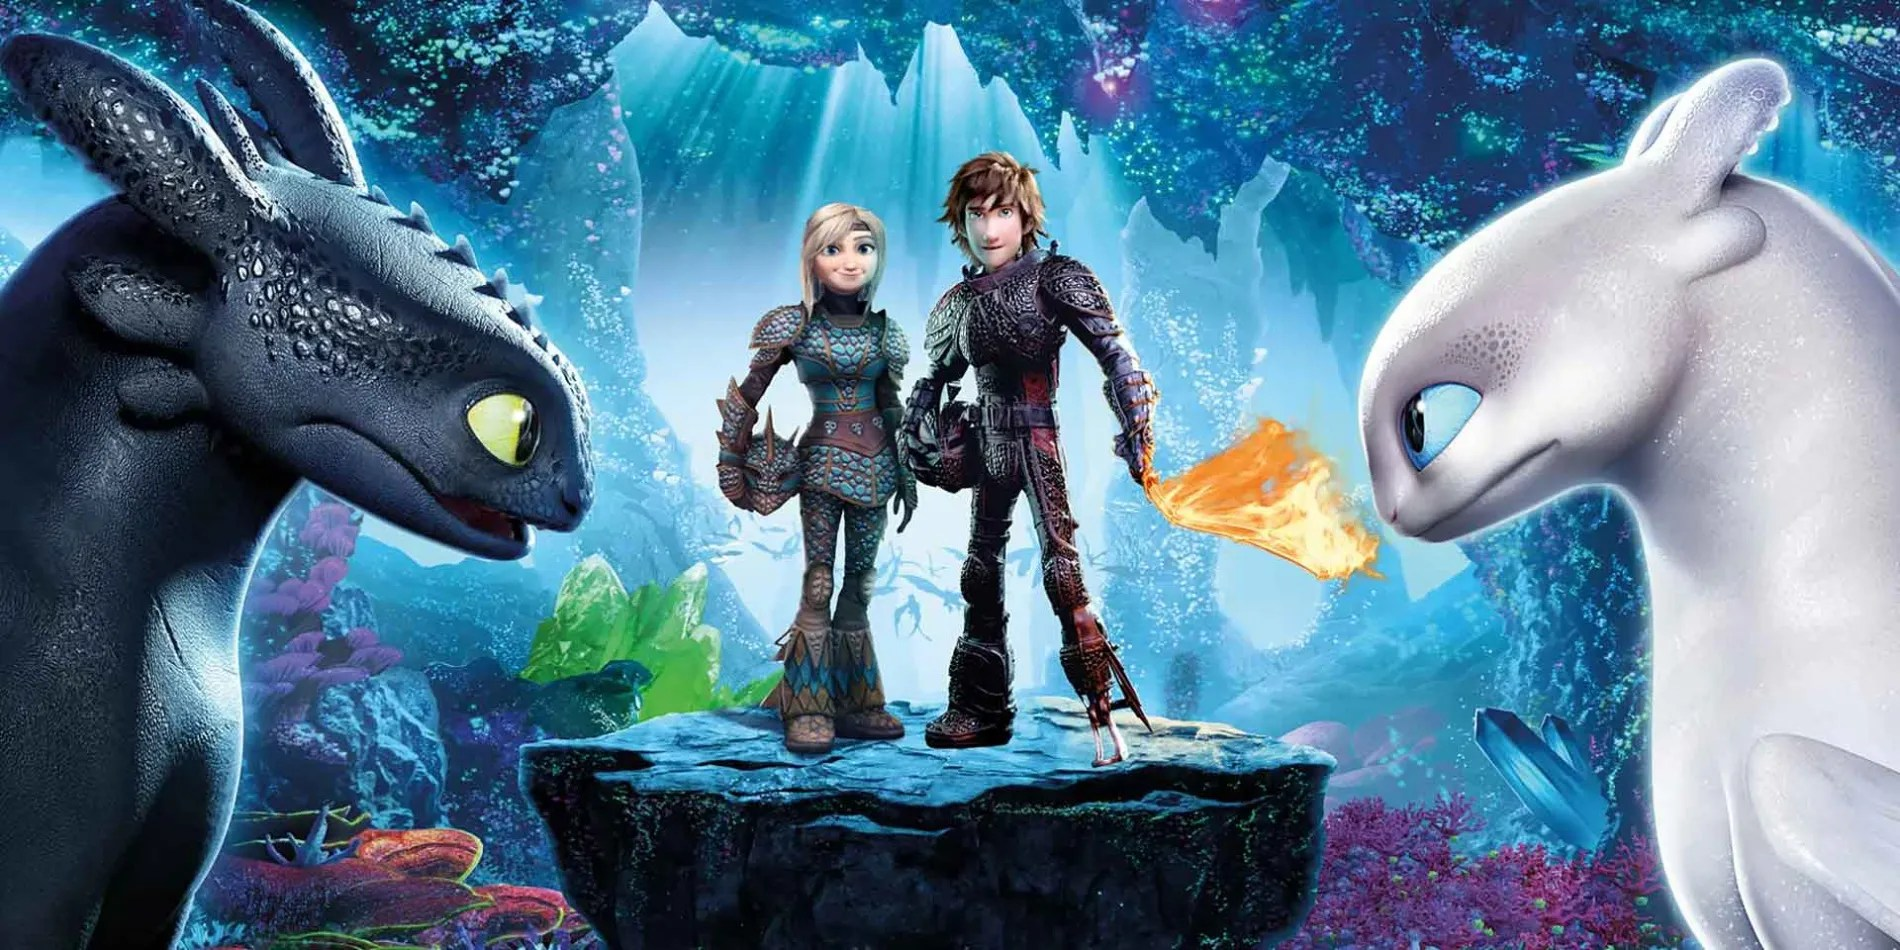 How to Train Your Dragon 3's Villain is Downright Disturbing